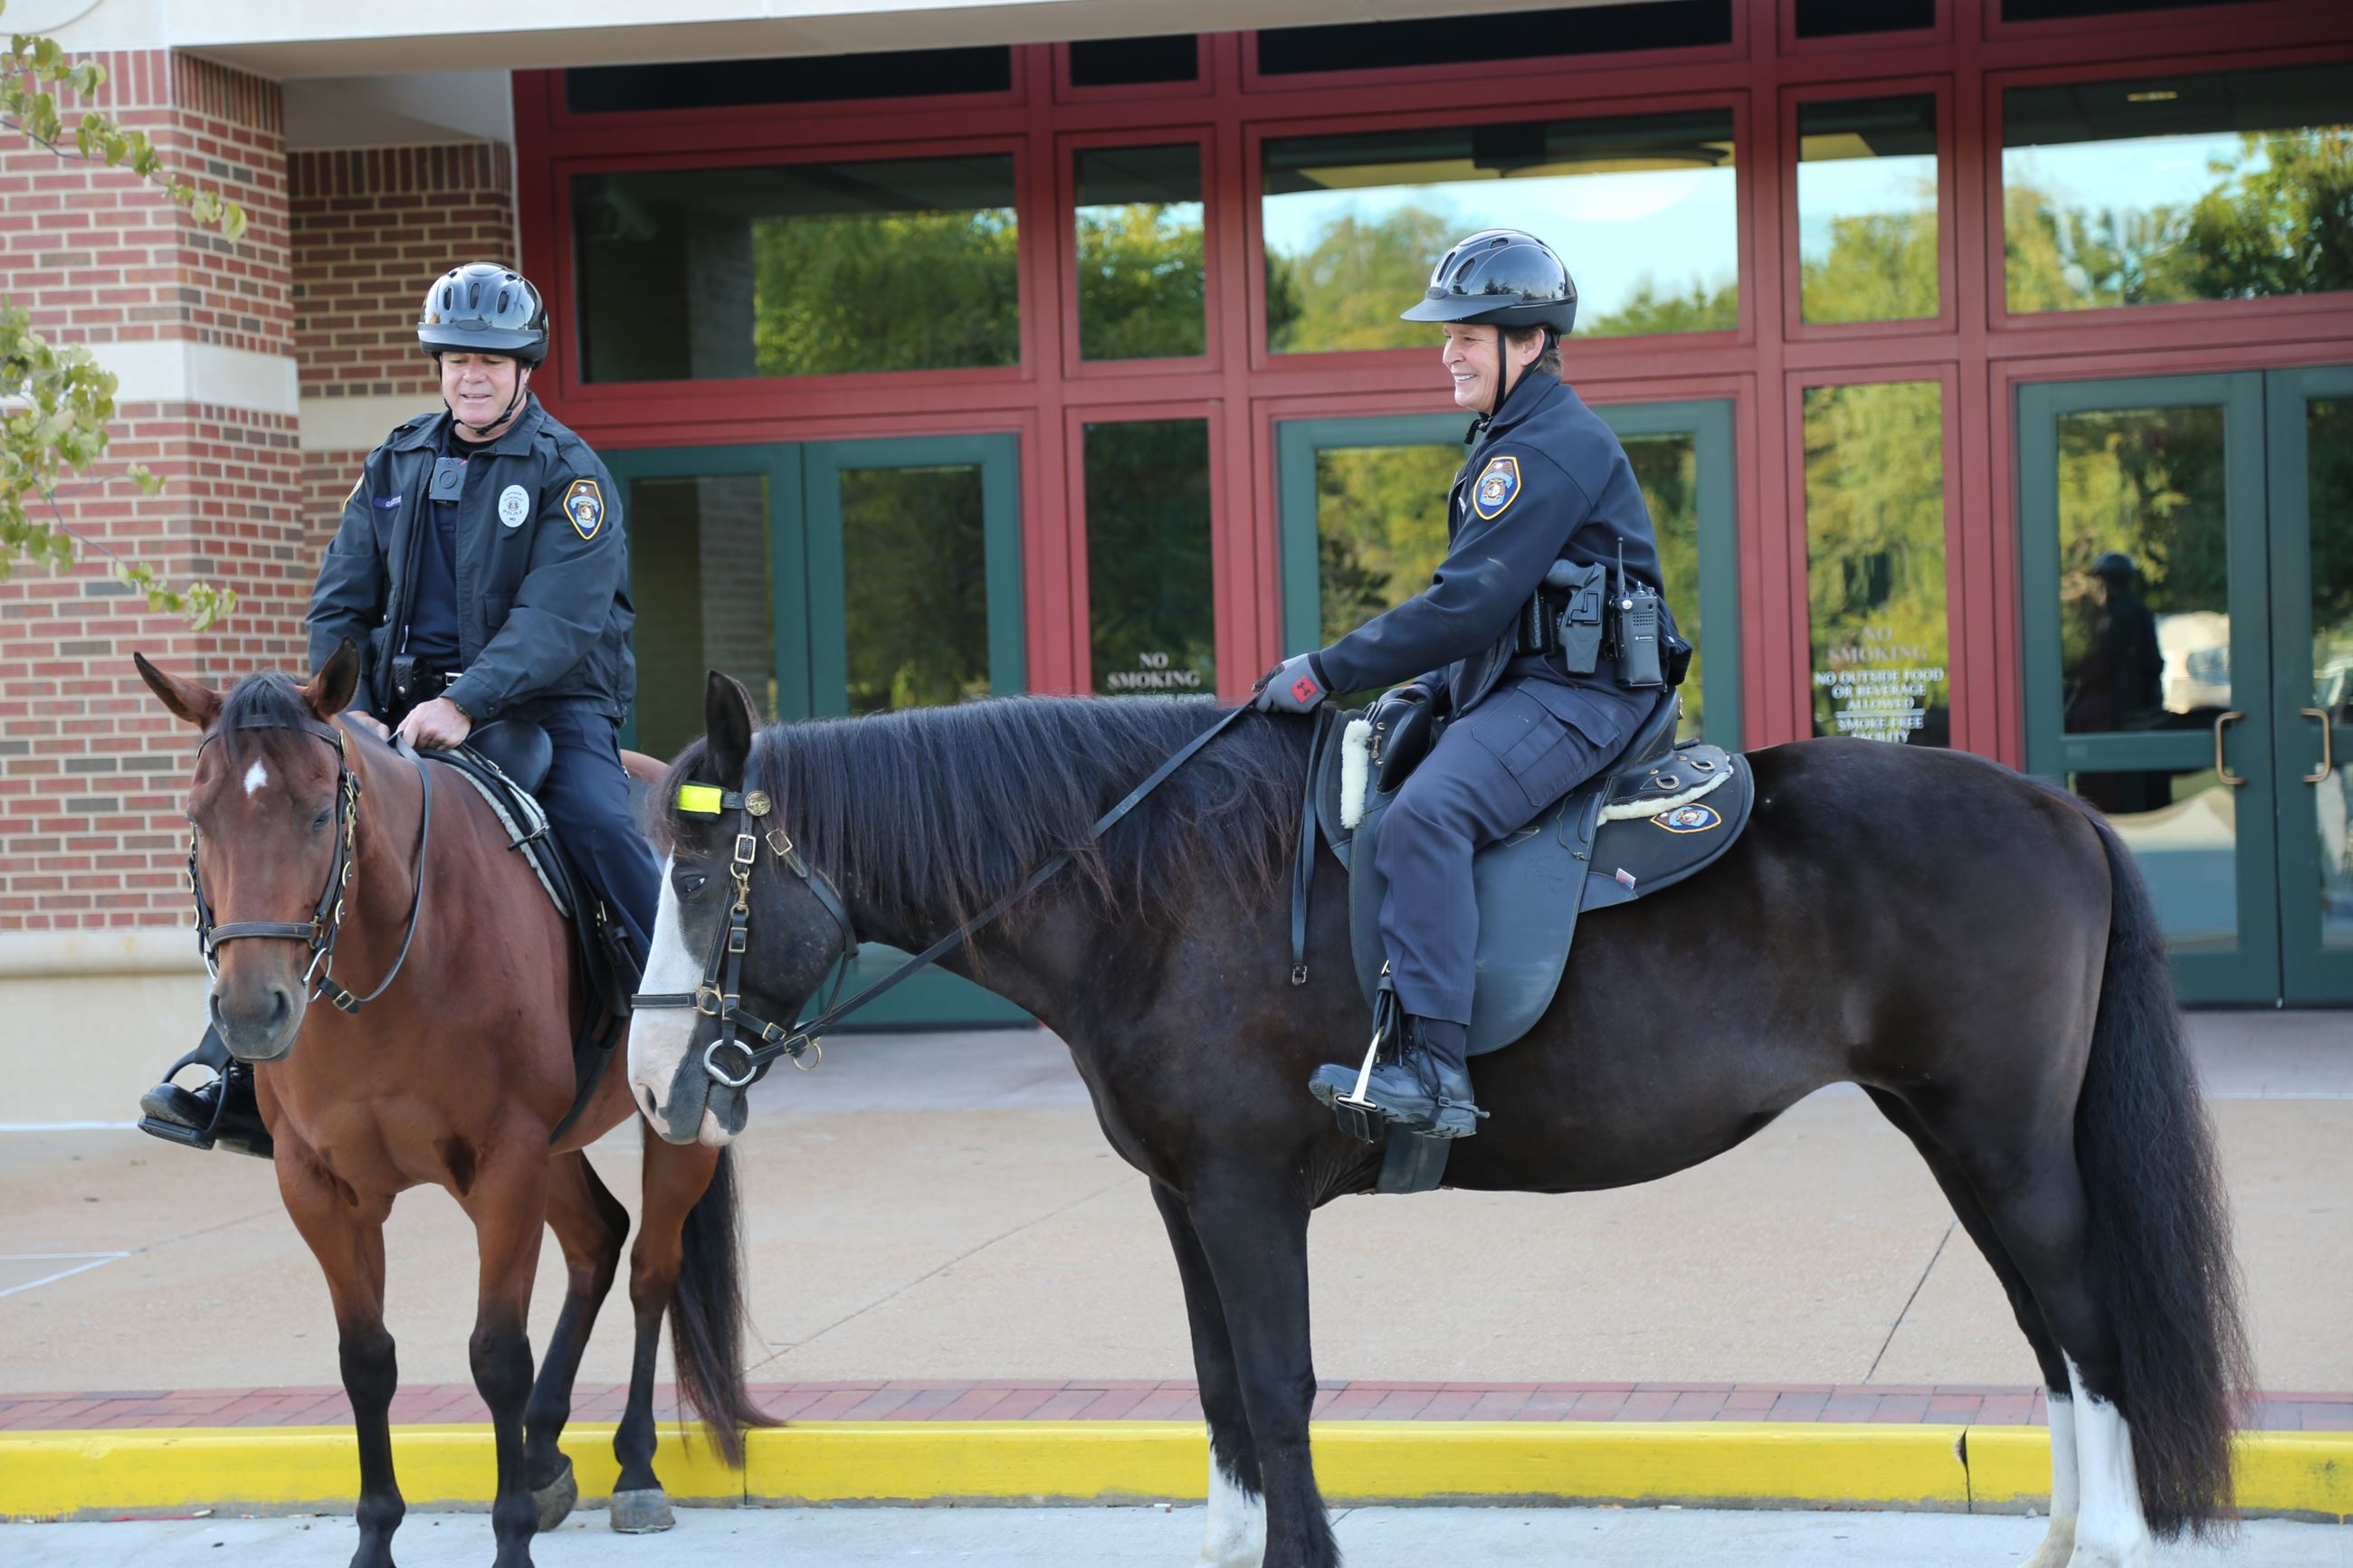 Two officers on horses